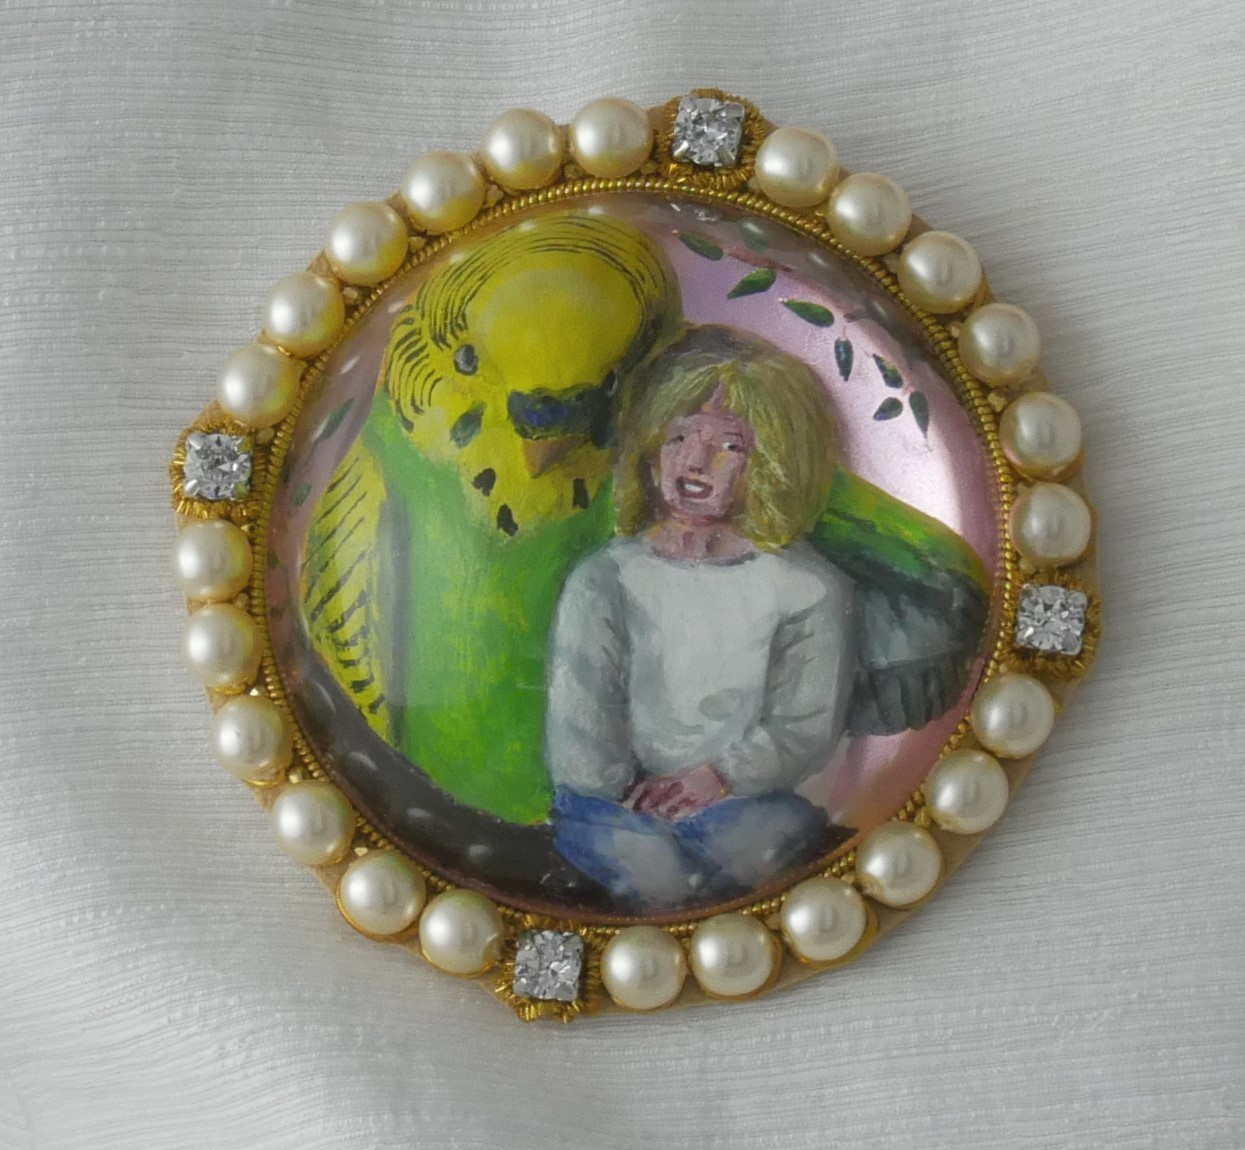 Reverse intaglio cast glass, carved and enamel painted crystal showing a large budieg alongside a small girl